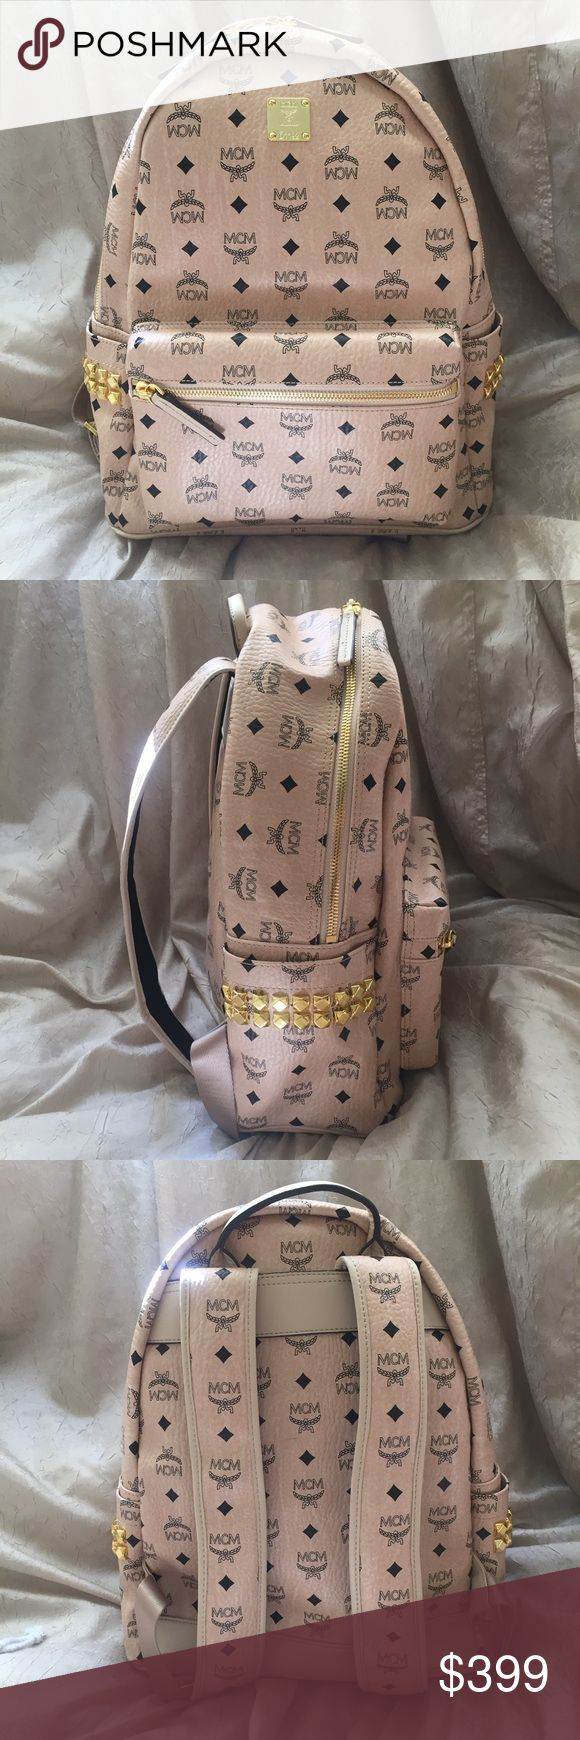 mcm backpack medium in beige authentic guaranteed. it's like new. sorry no trades. inappropriate comments will be ignored and/or reported. MCM Bags Backpacks